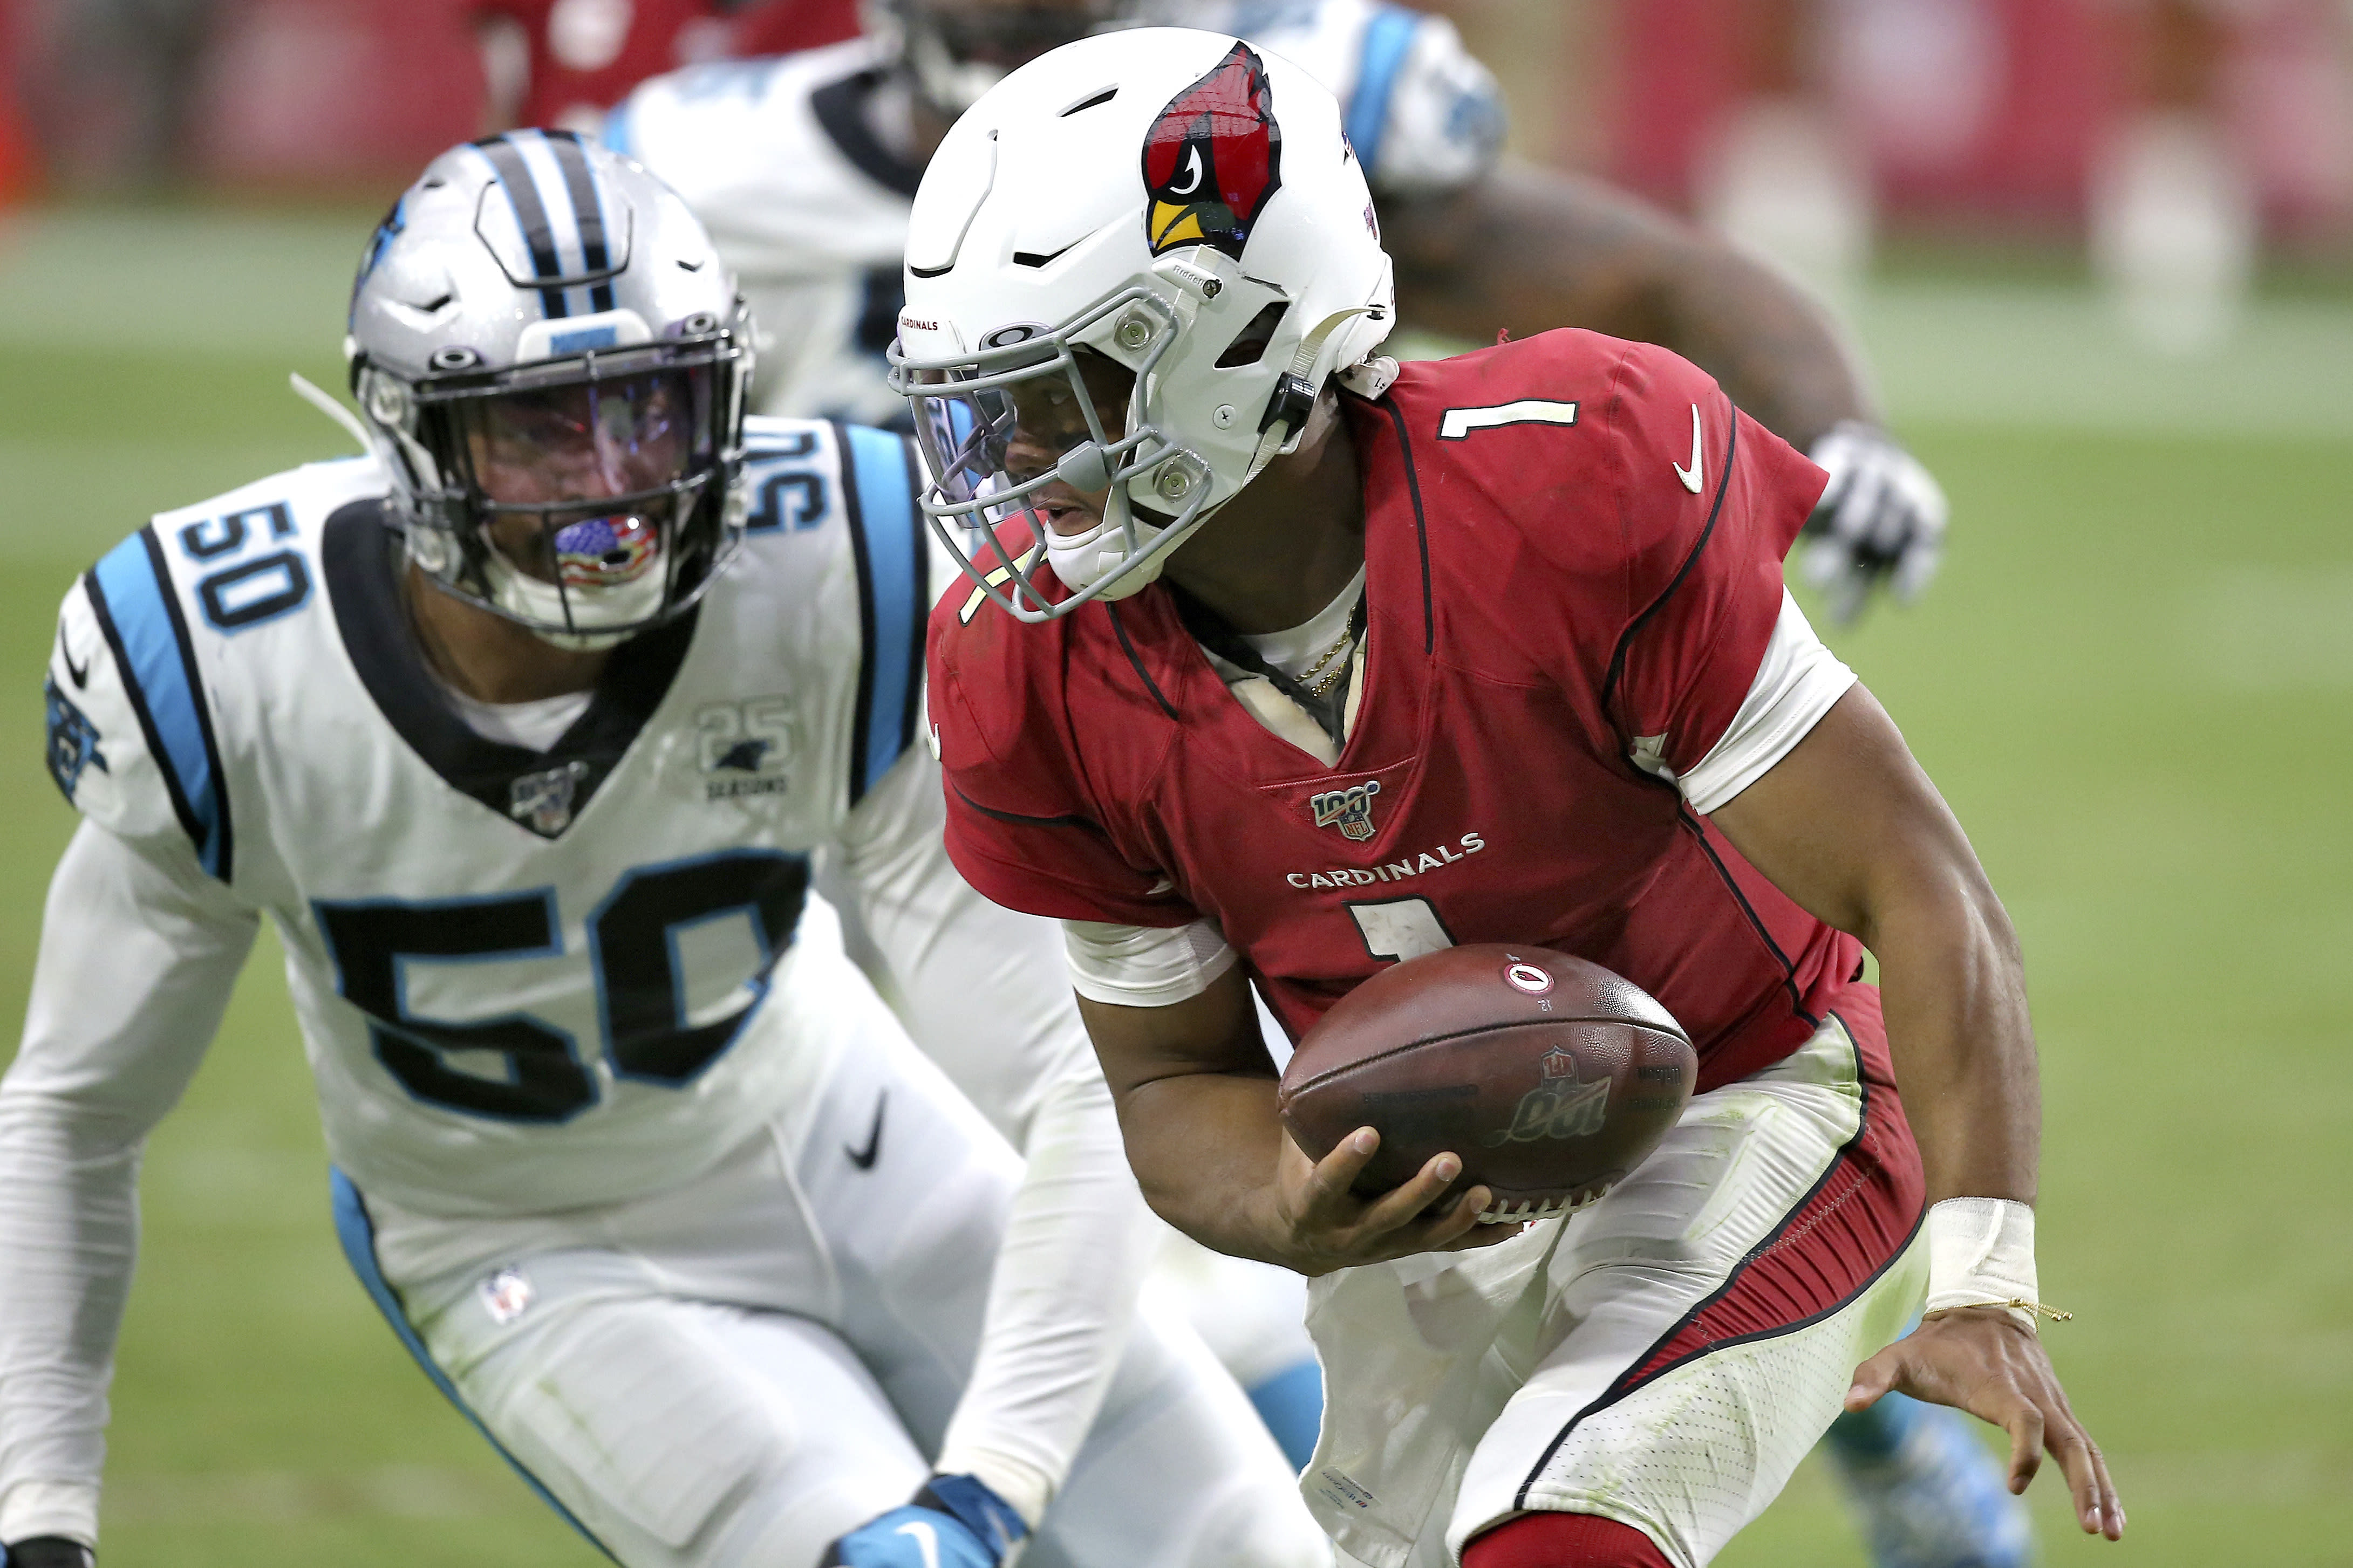 Cardinals' Fitzgerald reaches second-most receptions in National Football League history